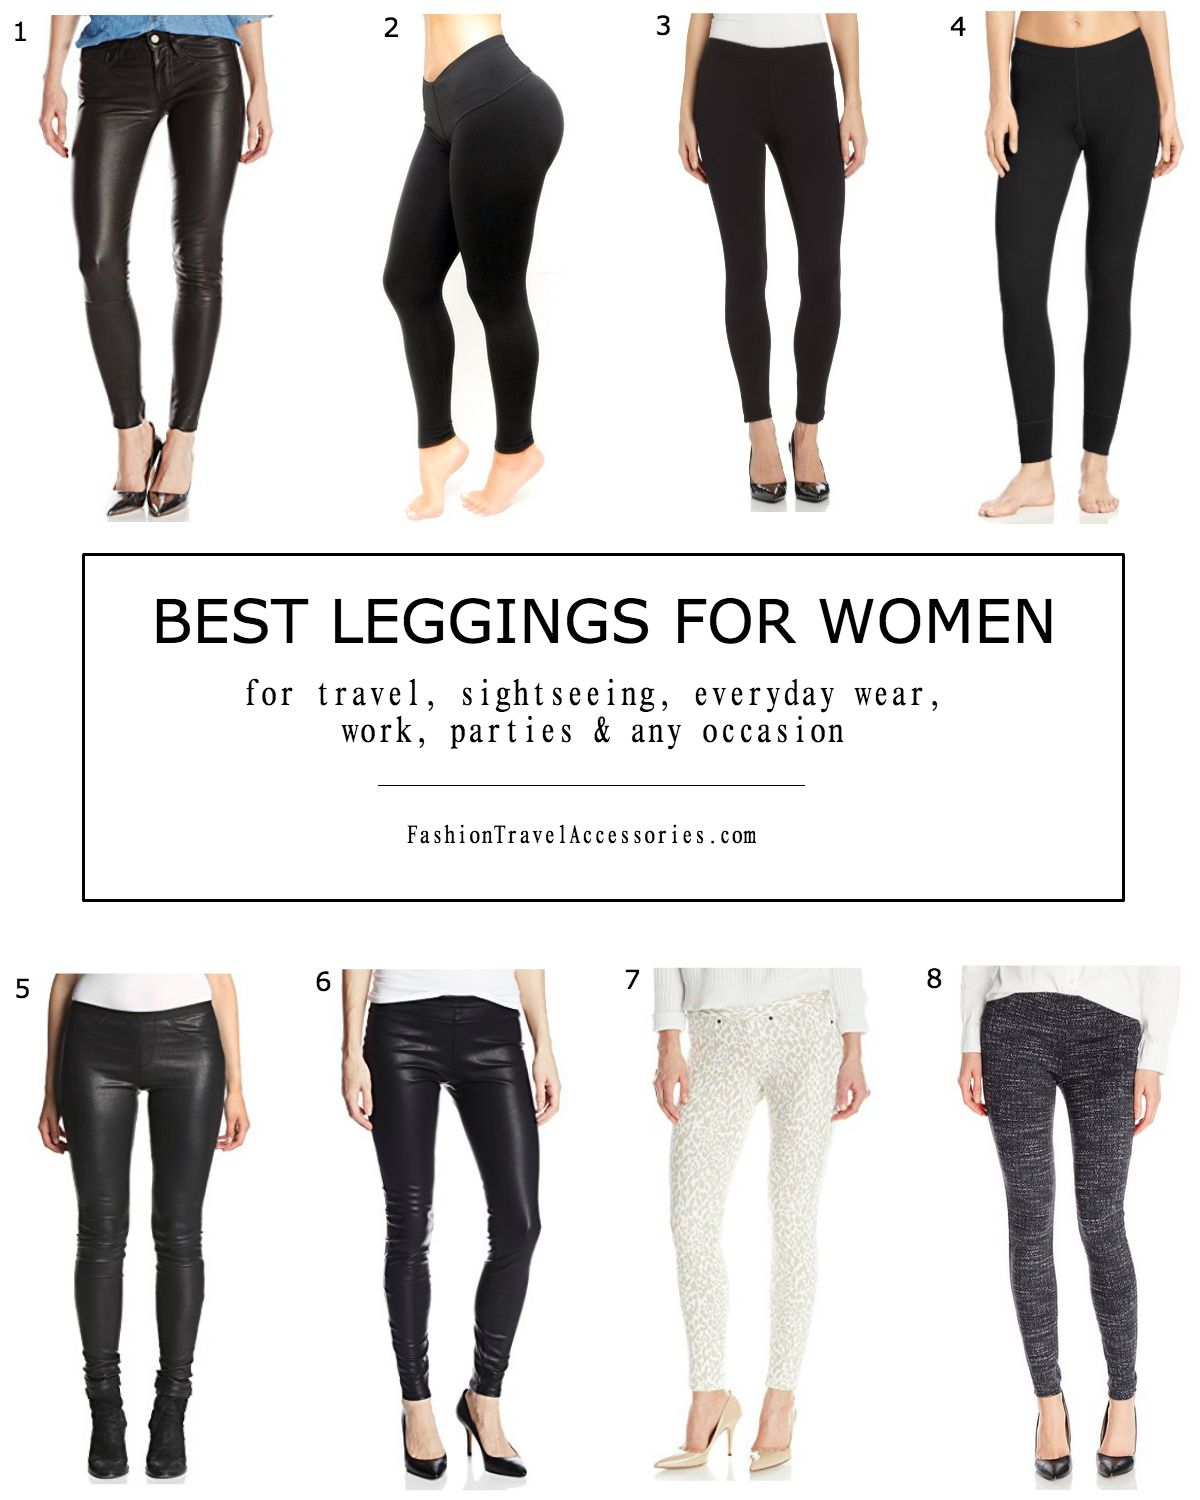 c34a9c99616520 Best Leggings For Women For Travel, Everyday Wear & Any Occasion ...